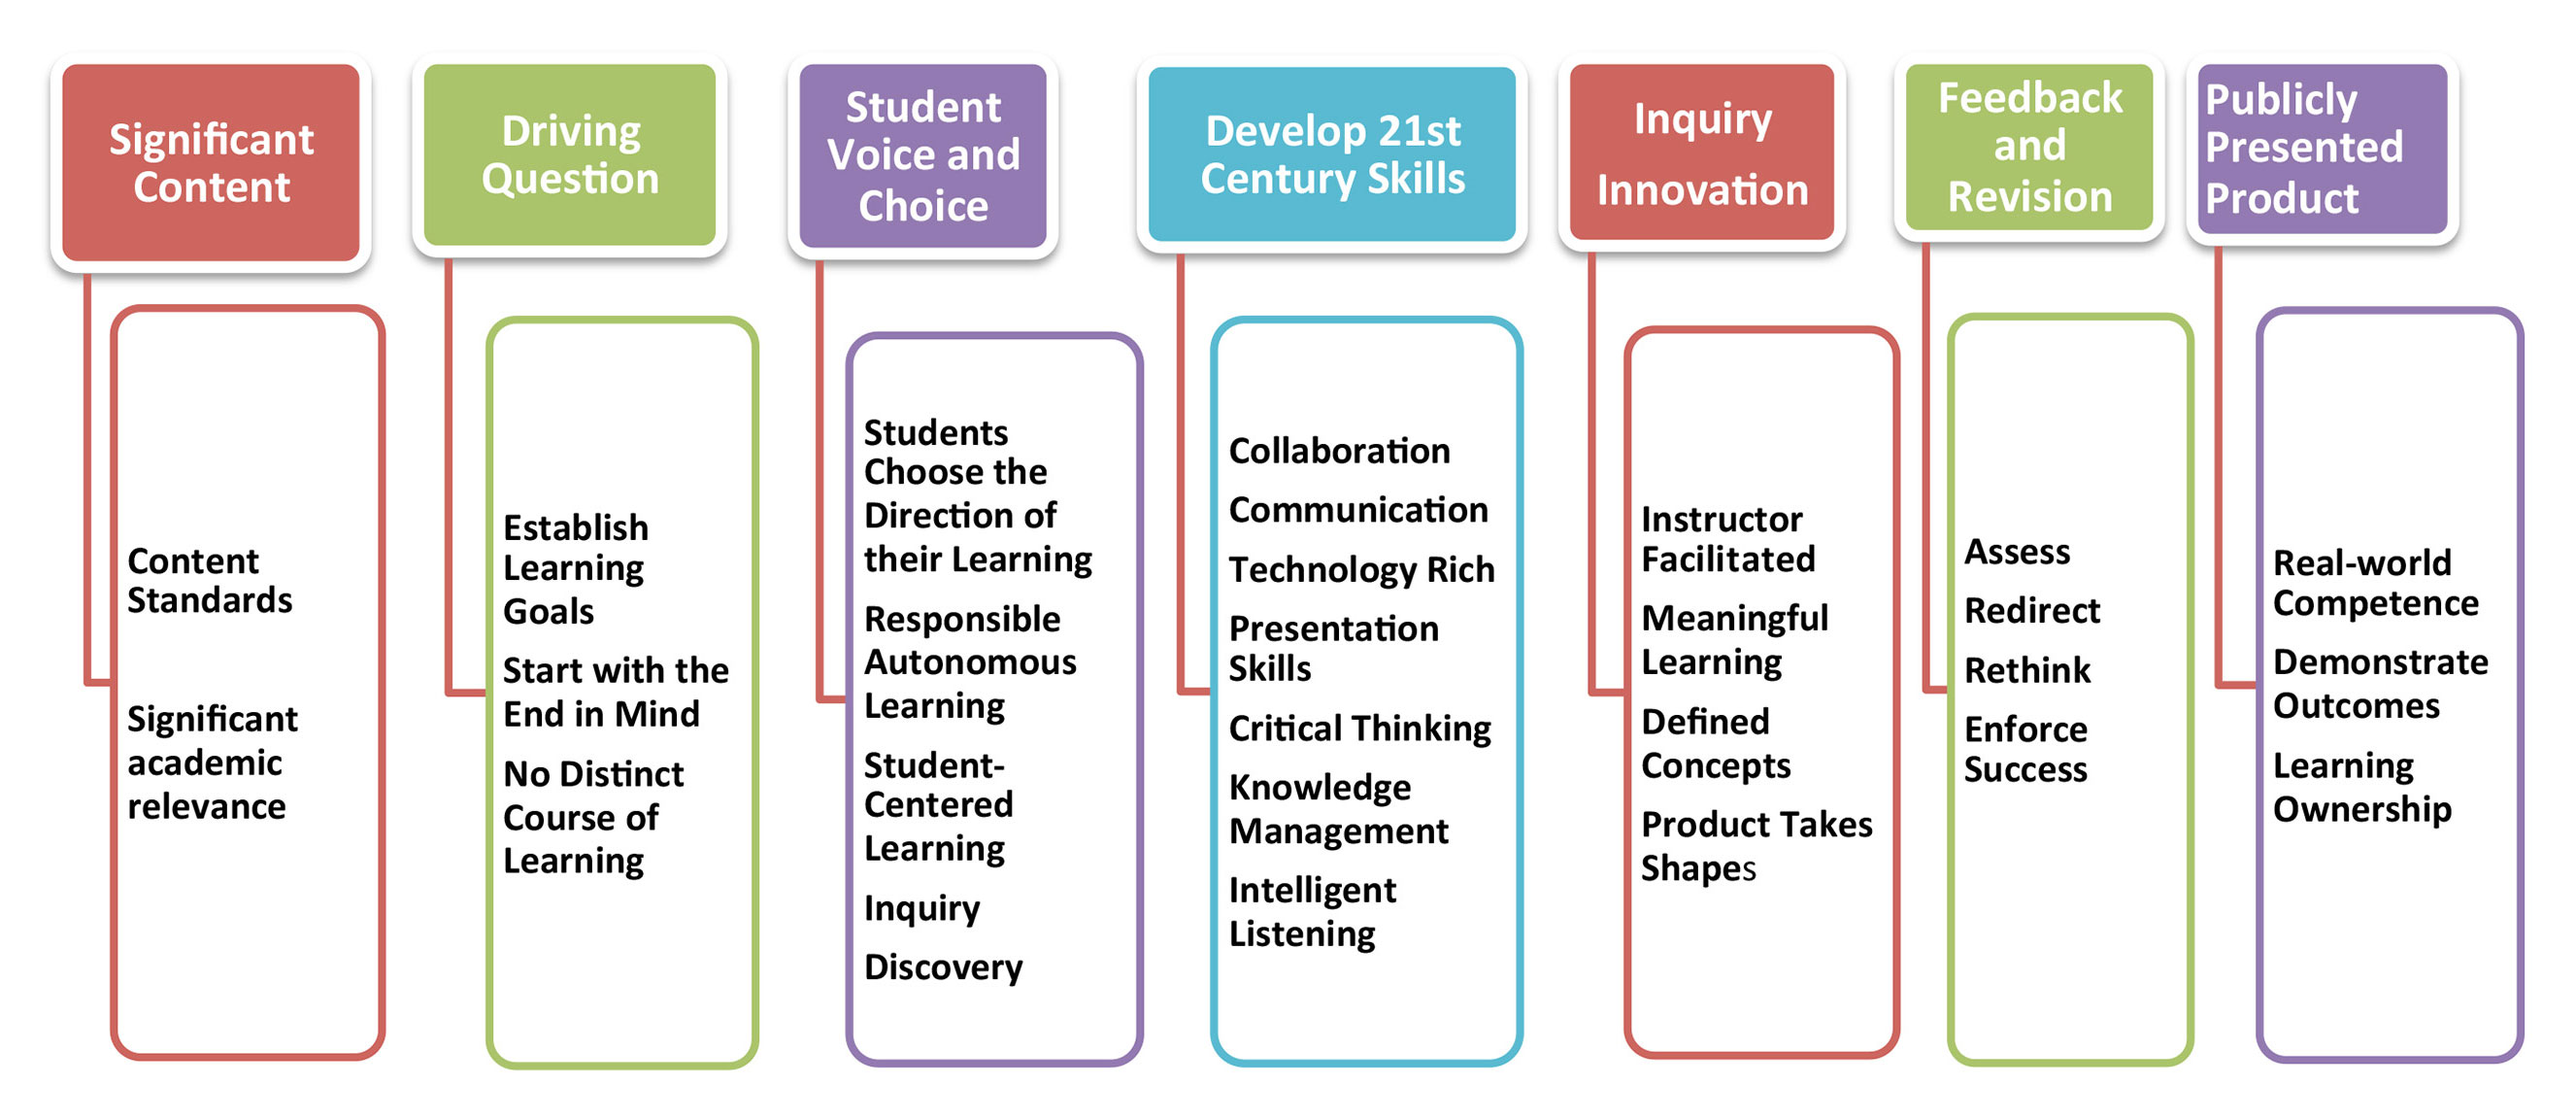 ... -based-learning/images/PBL-Essential-Elements-Revised20130802.jpg